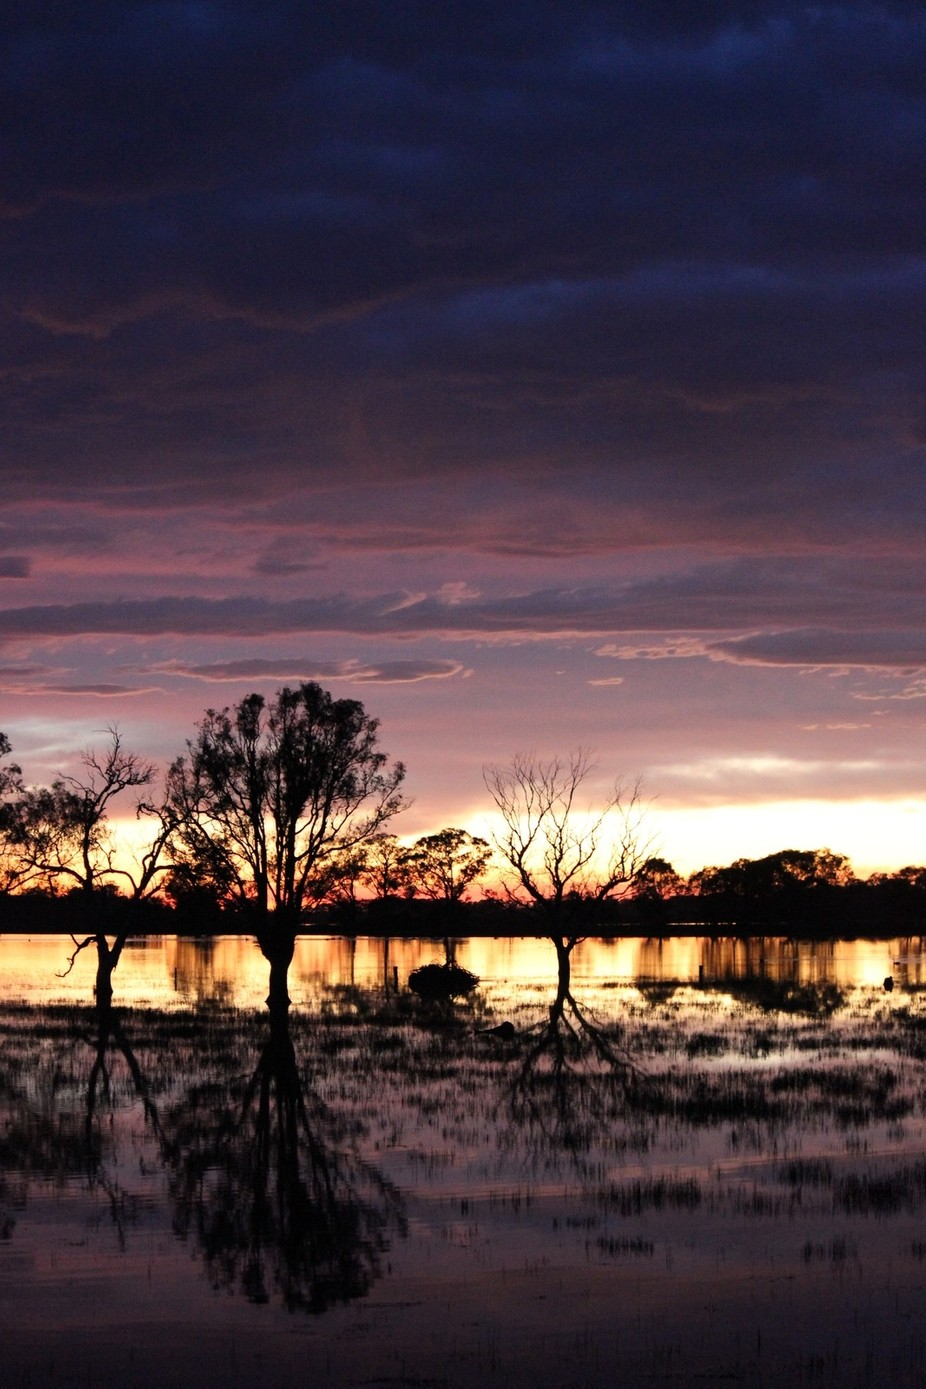 Taken at dawn at wetlands in Gippland Victoria